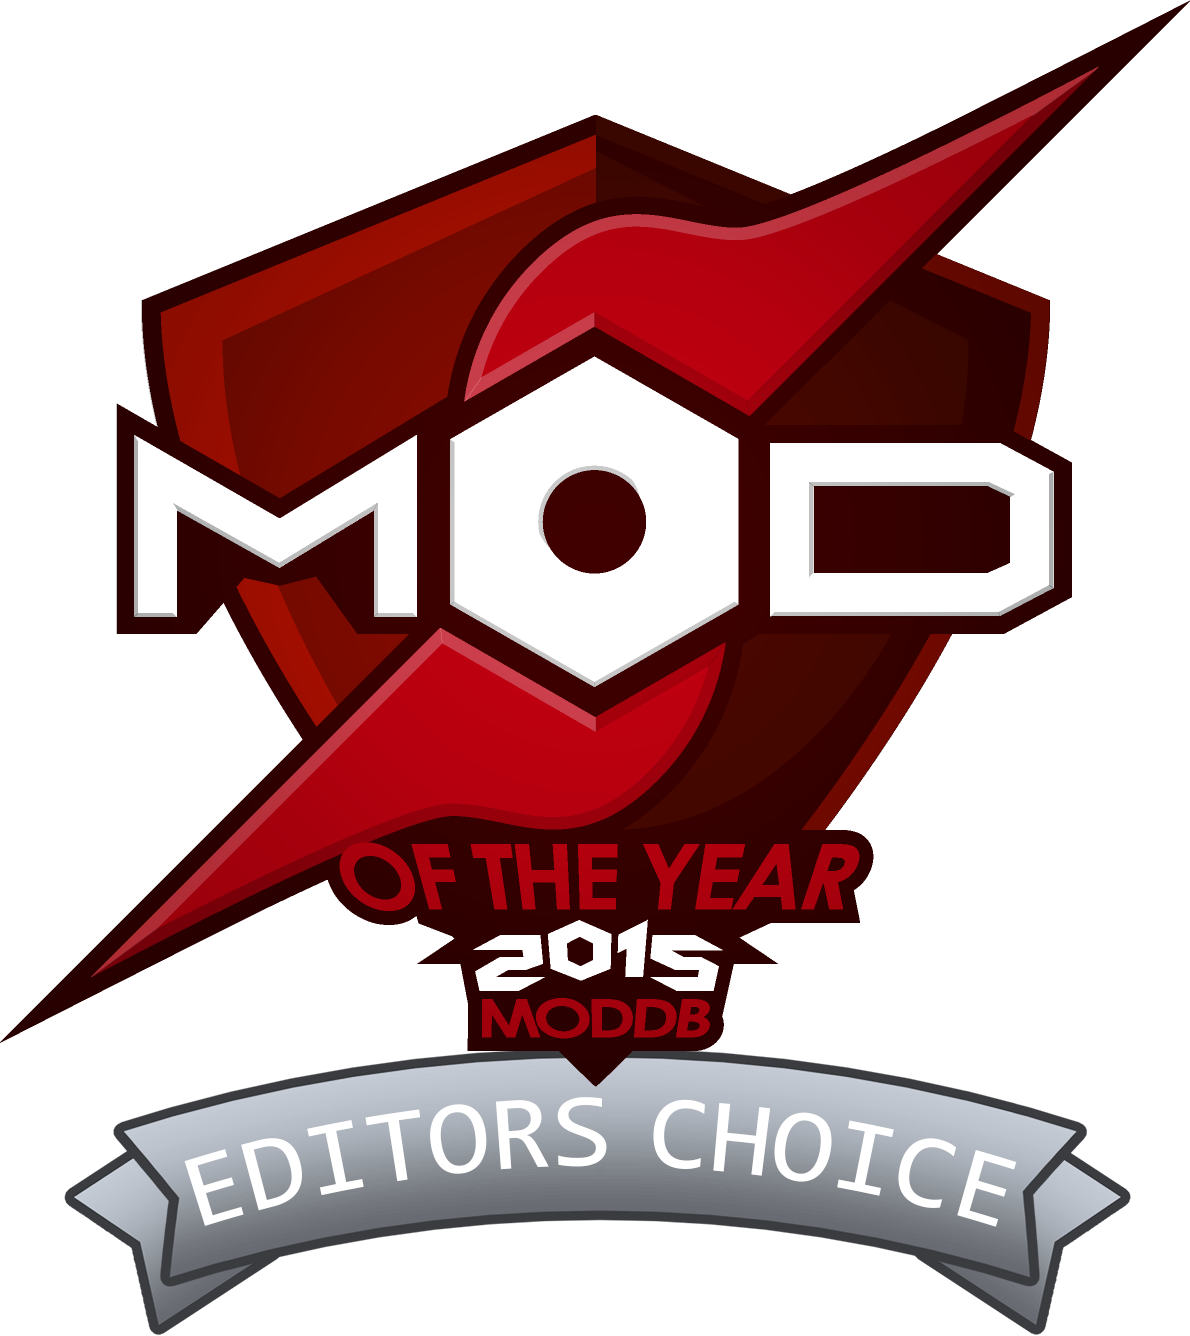 Moddb Editor's Choice 2015